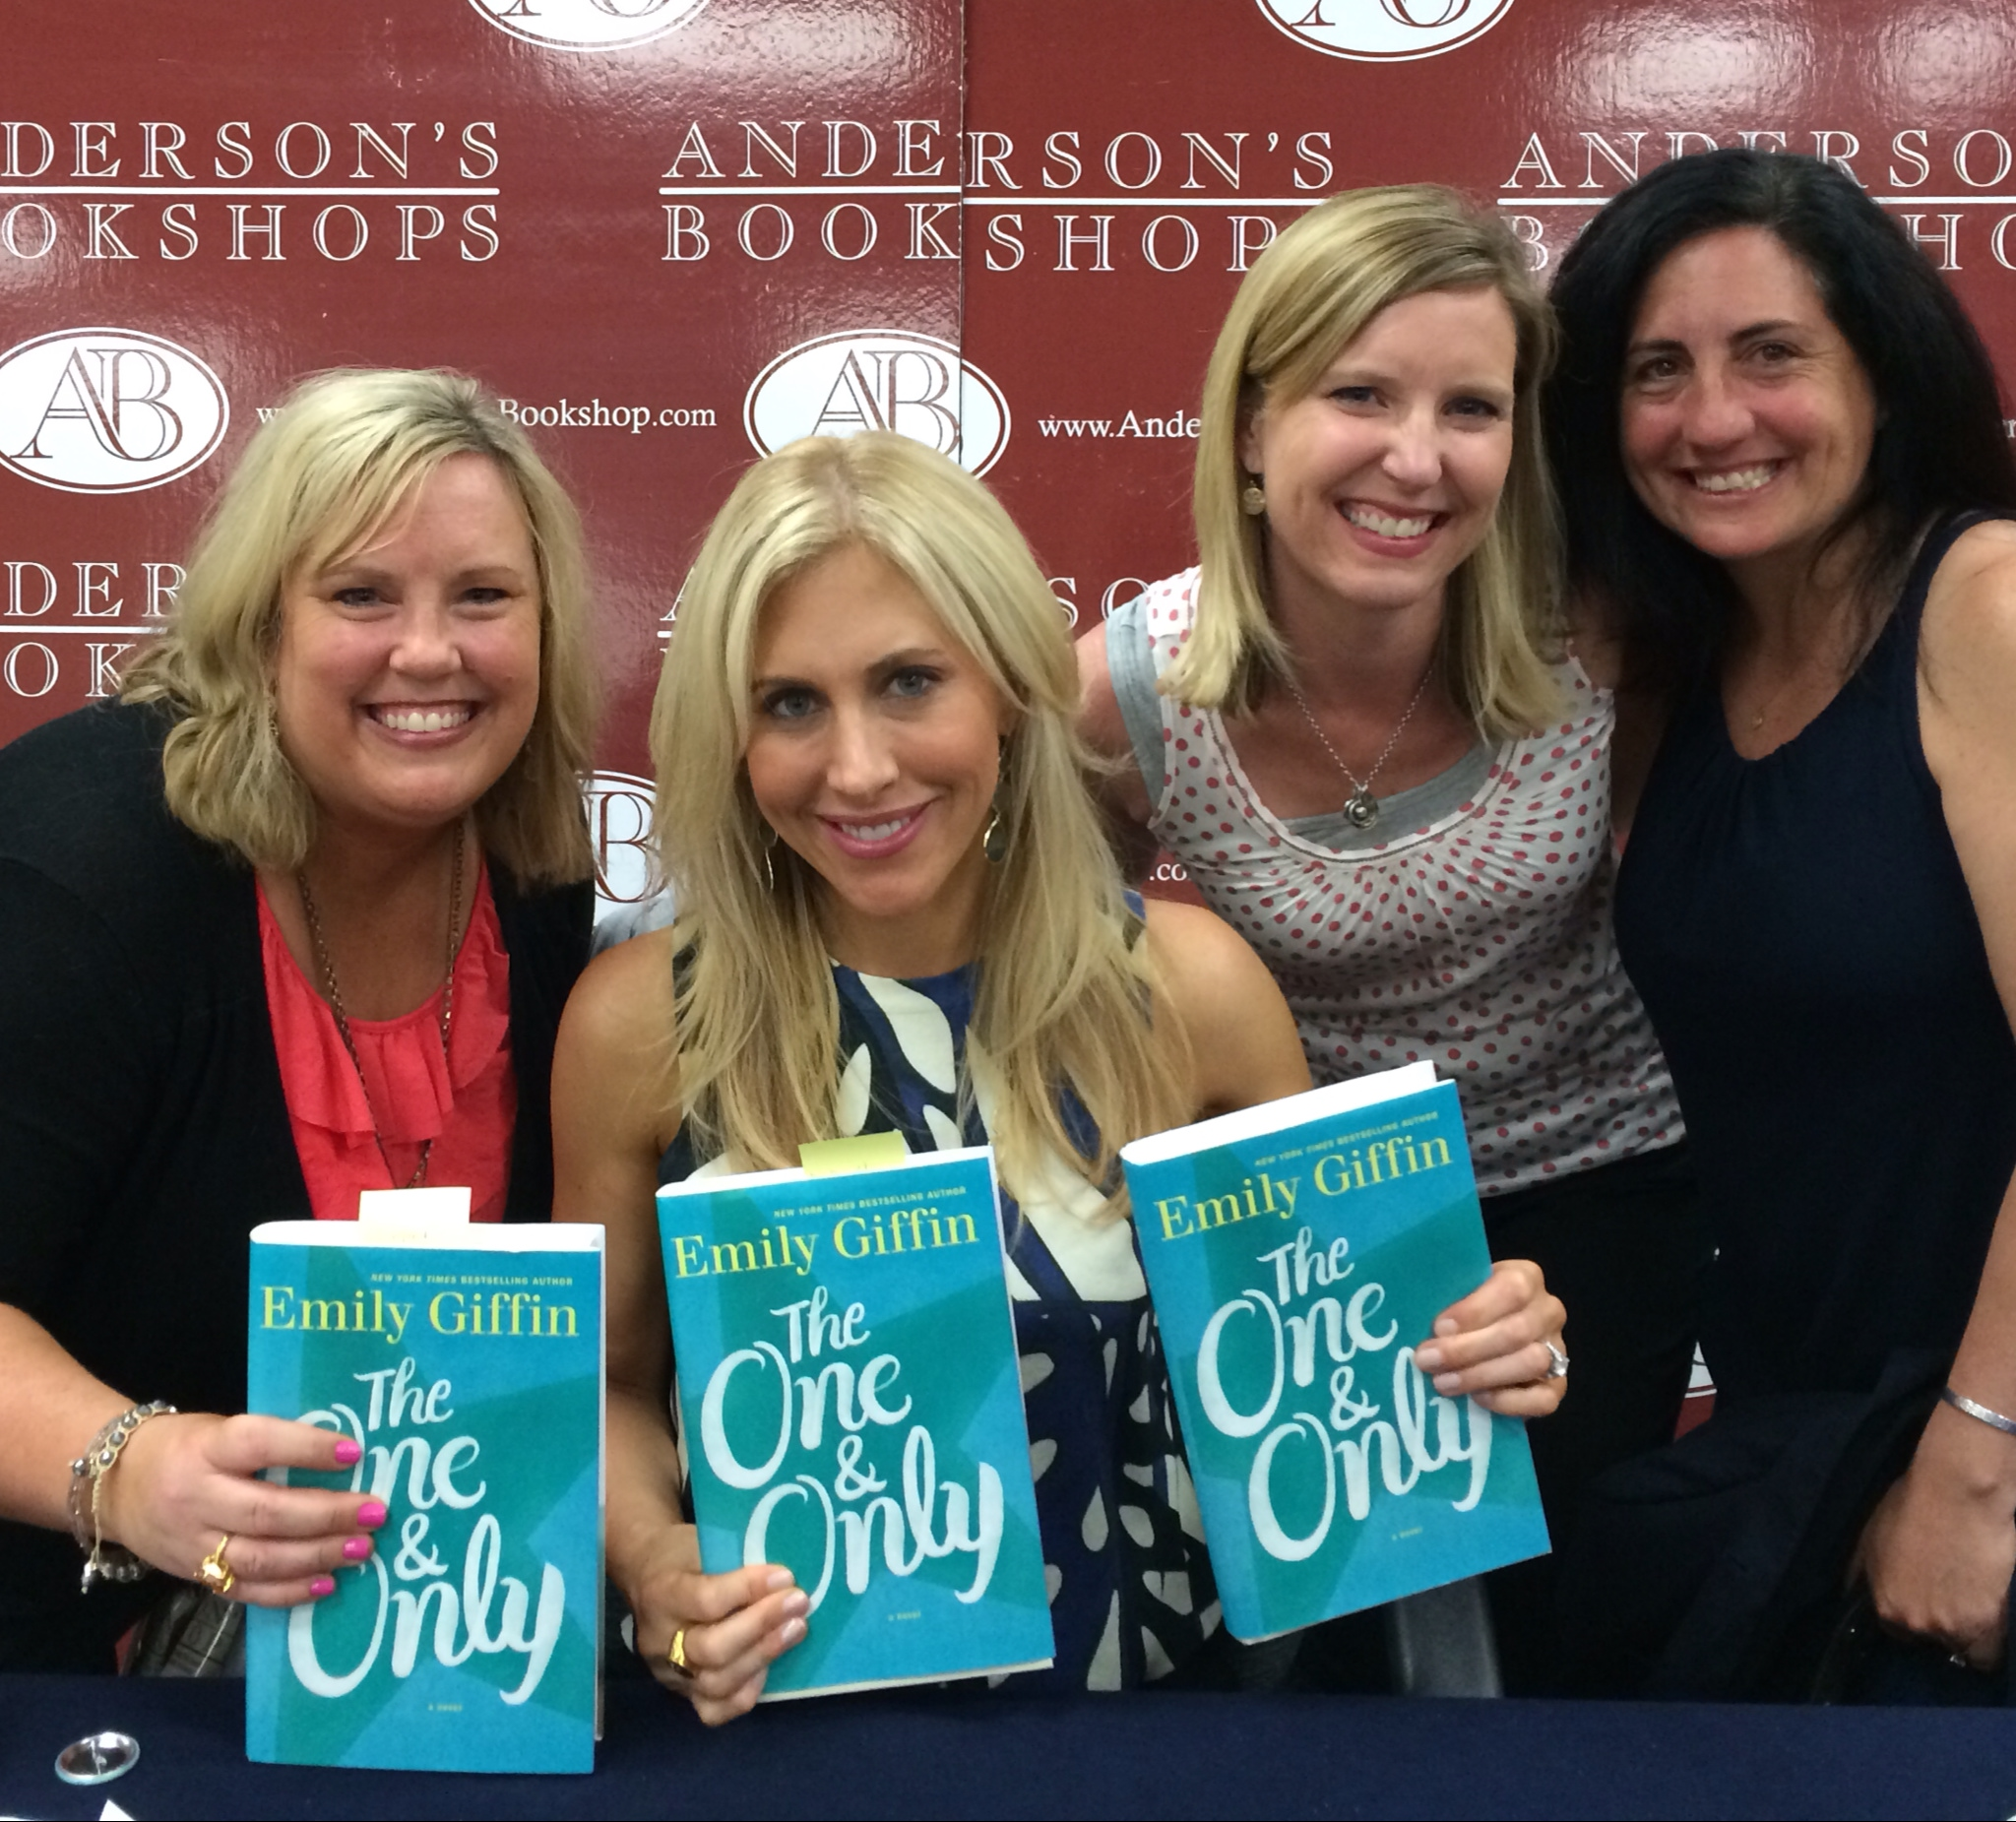 Jen Lancaster + Emily Giffin = Chick Lit Perfection!